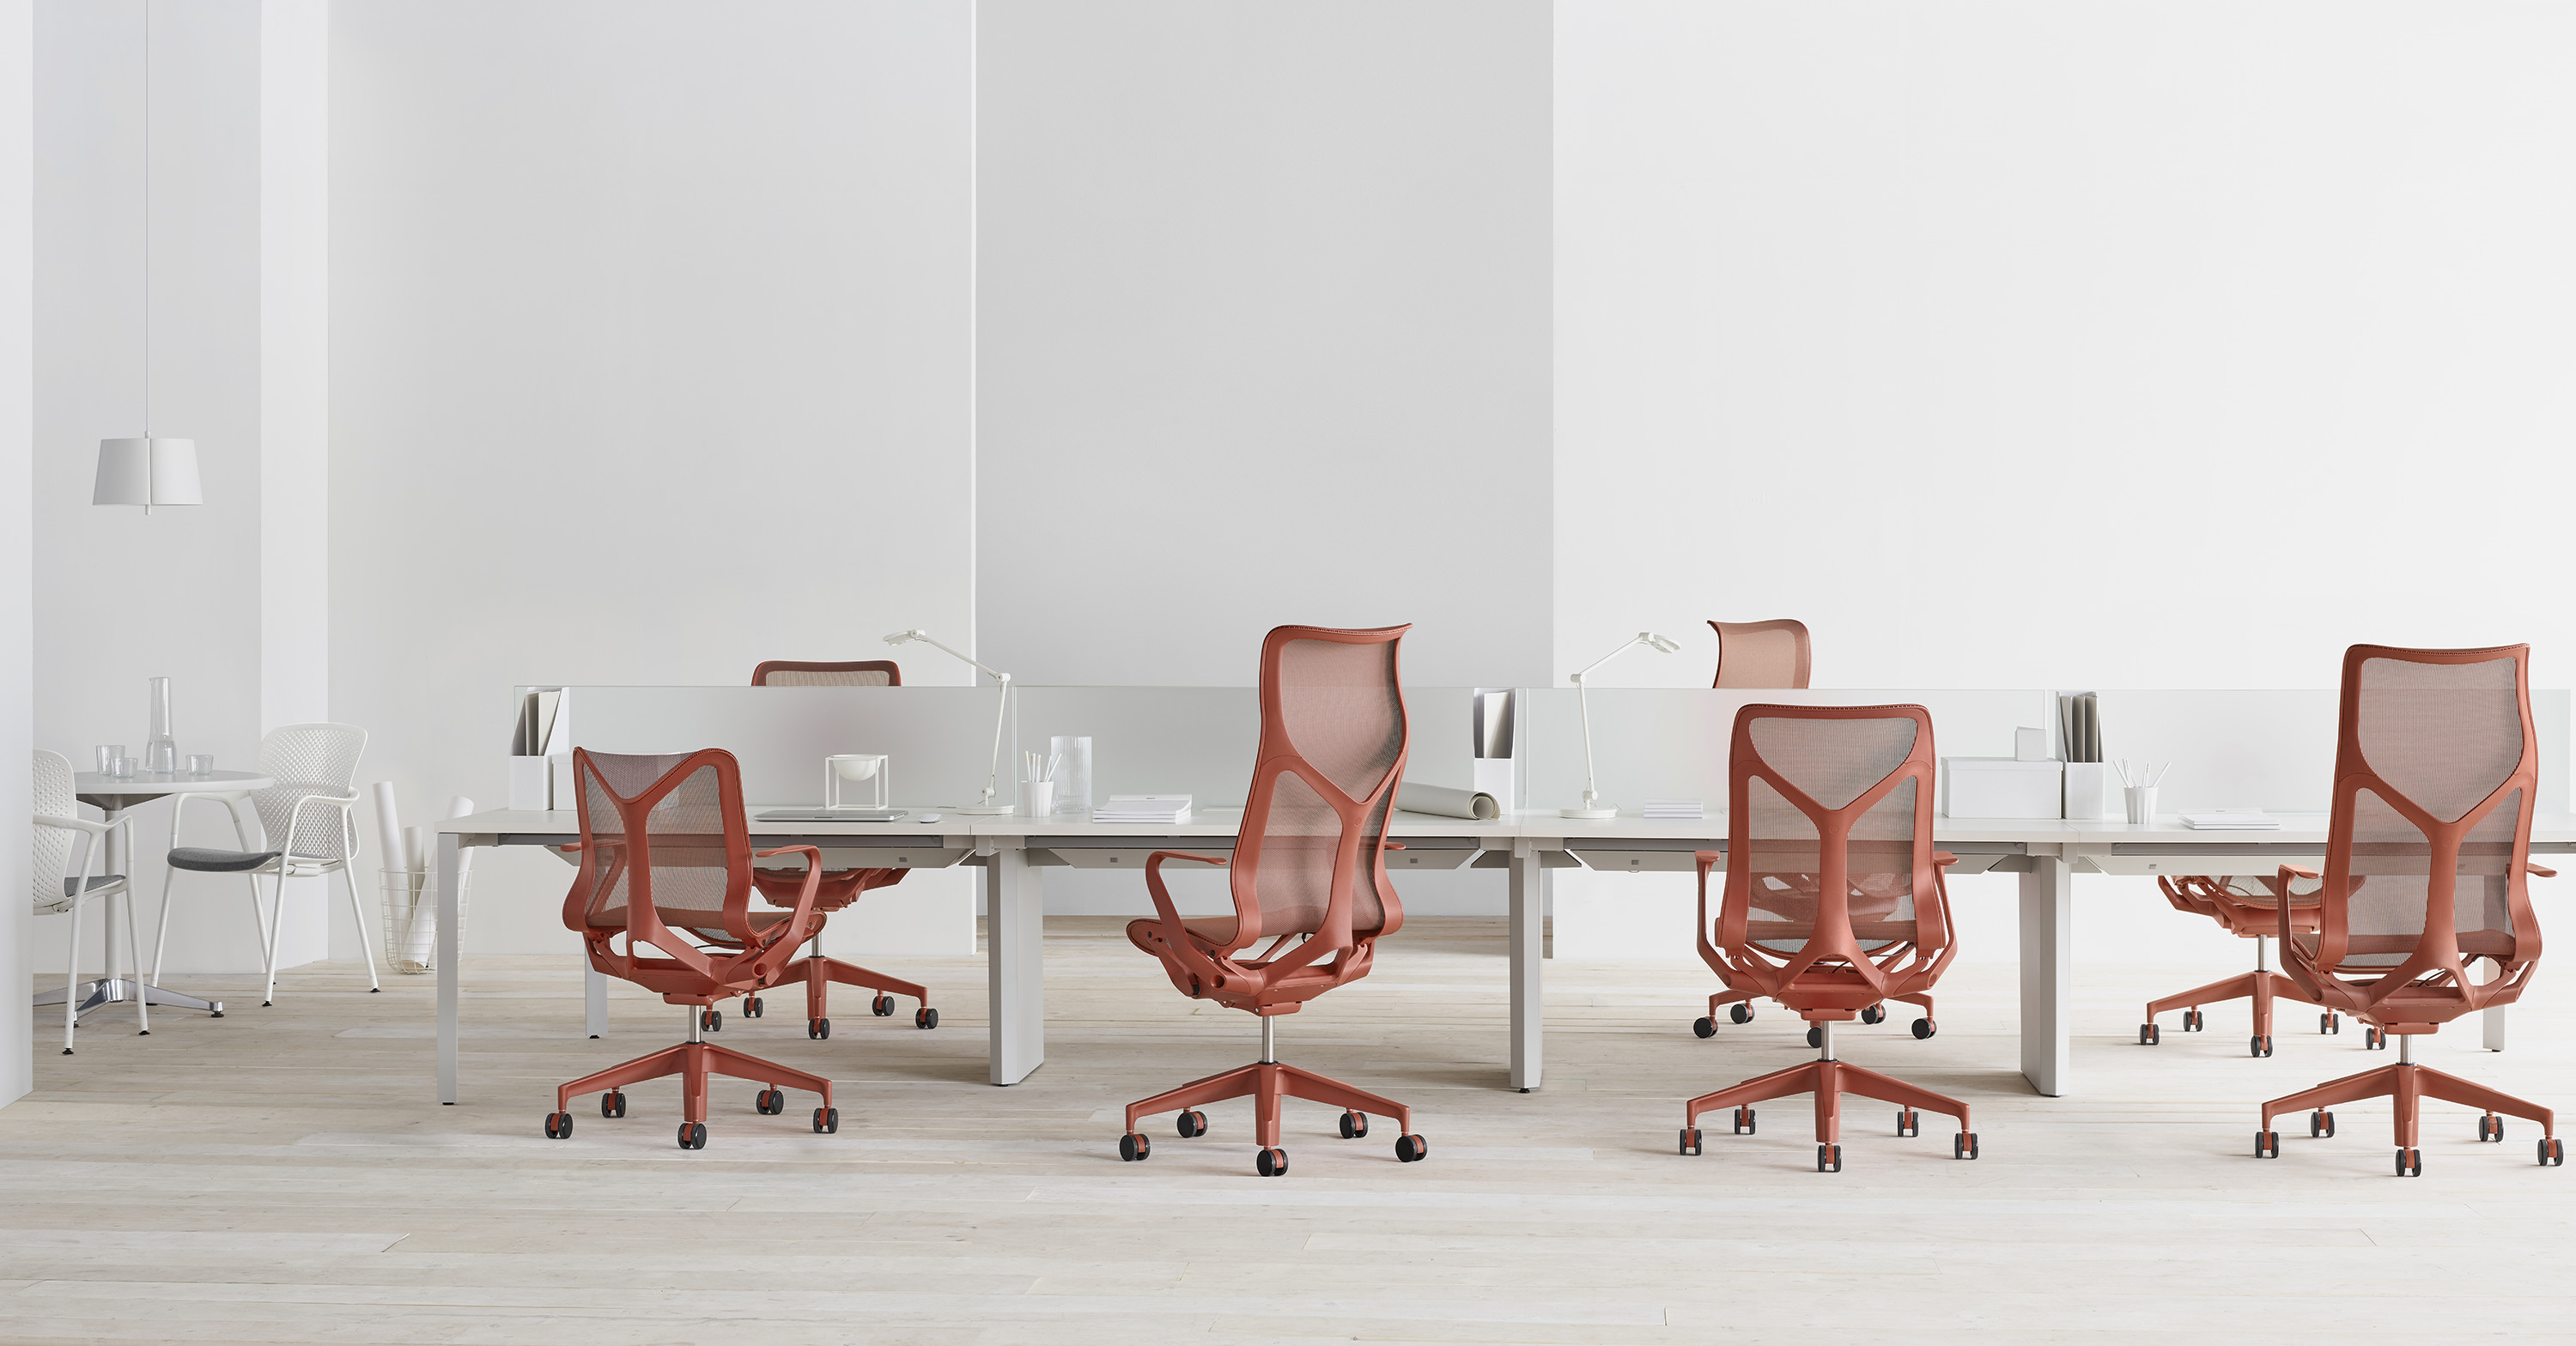 Cosm or intuitive ergonomics applied to the new Herman Miller seat